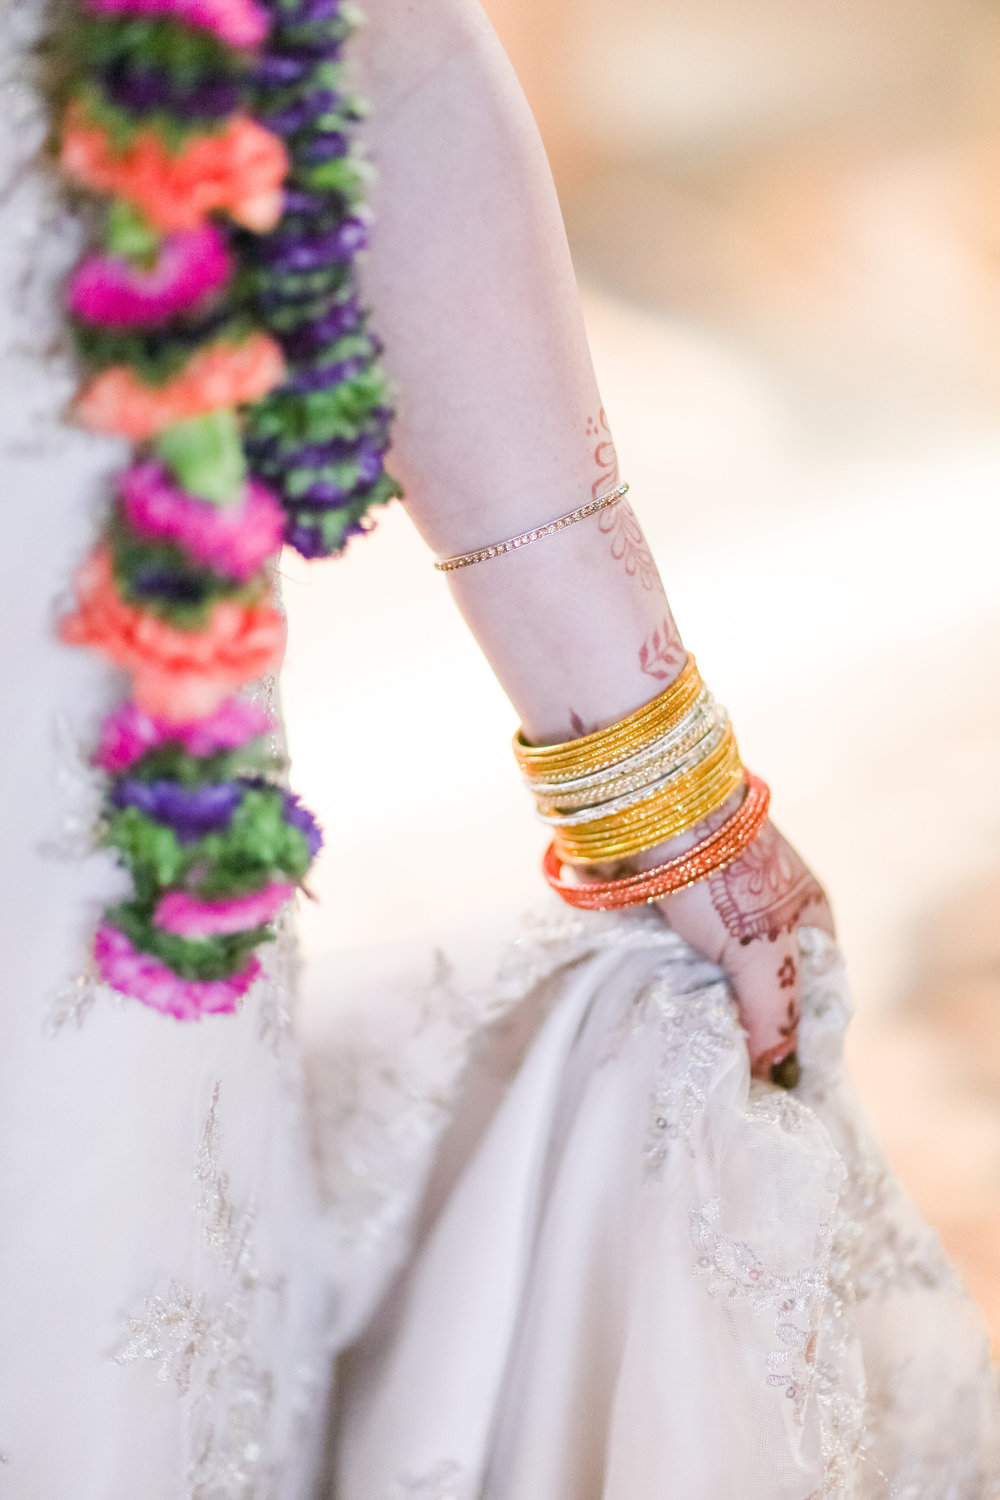 Beswoon_IndianFusion_0305.jpg